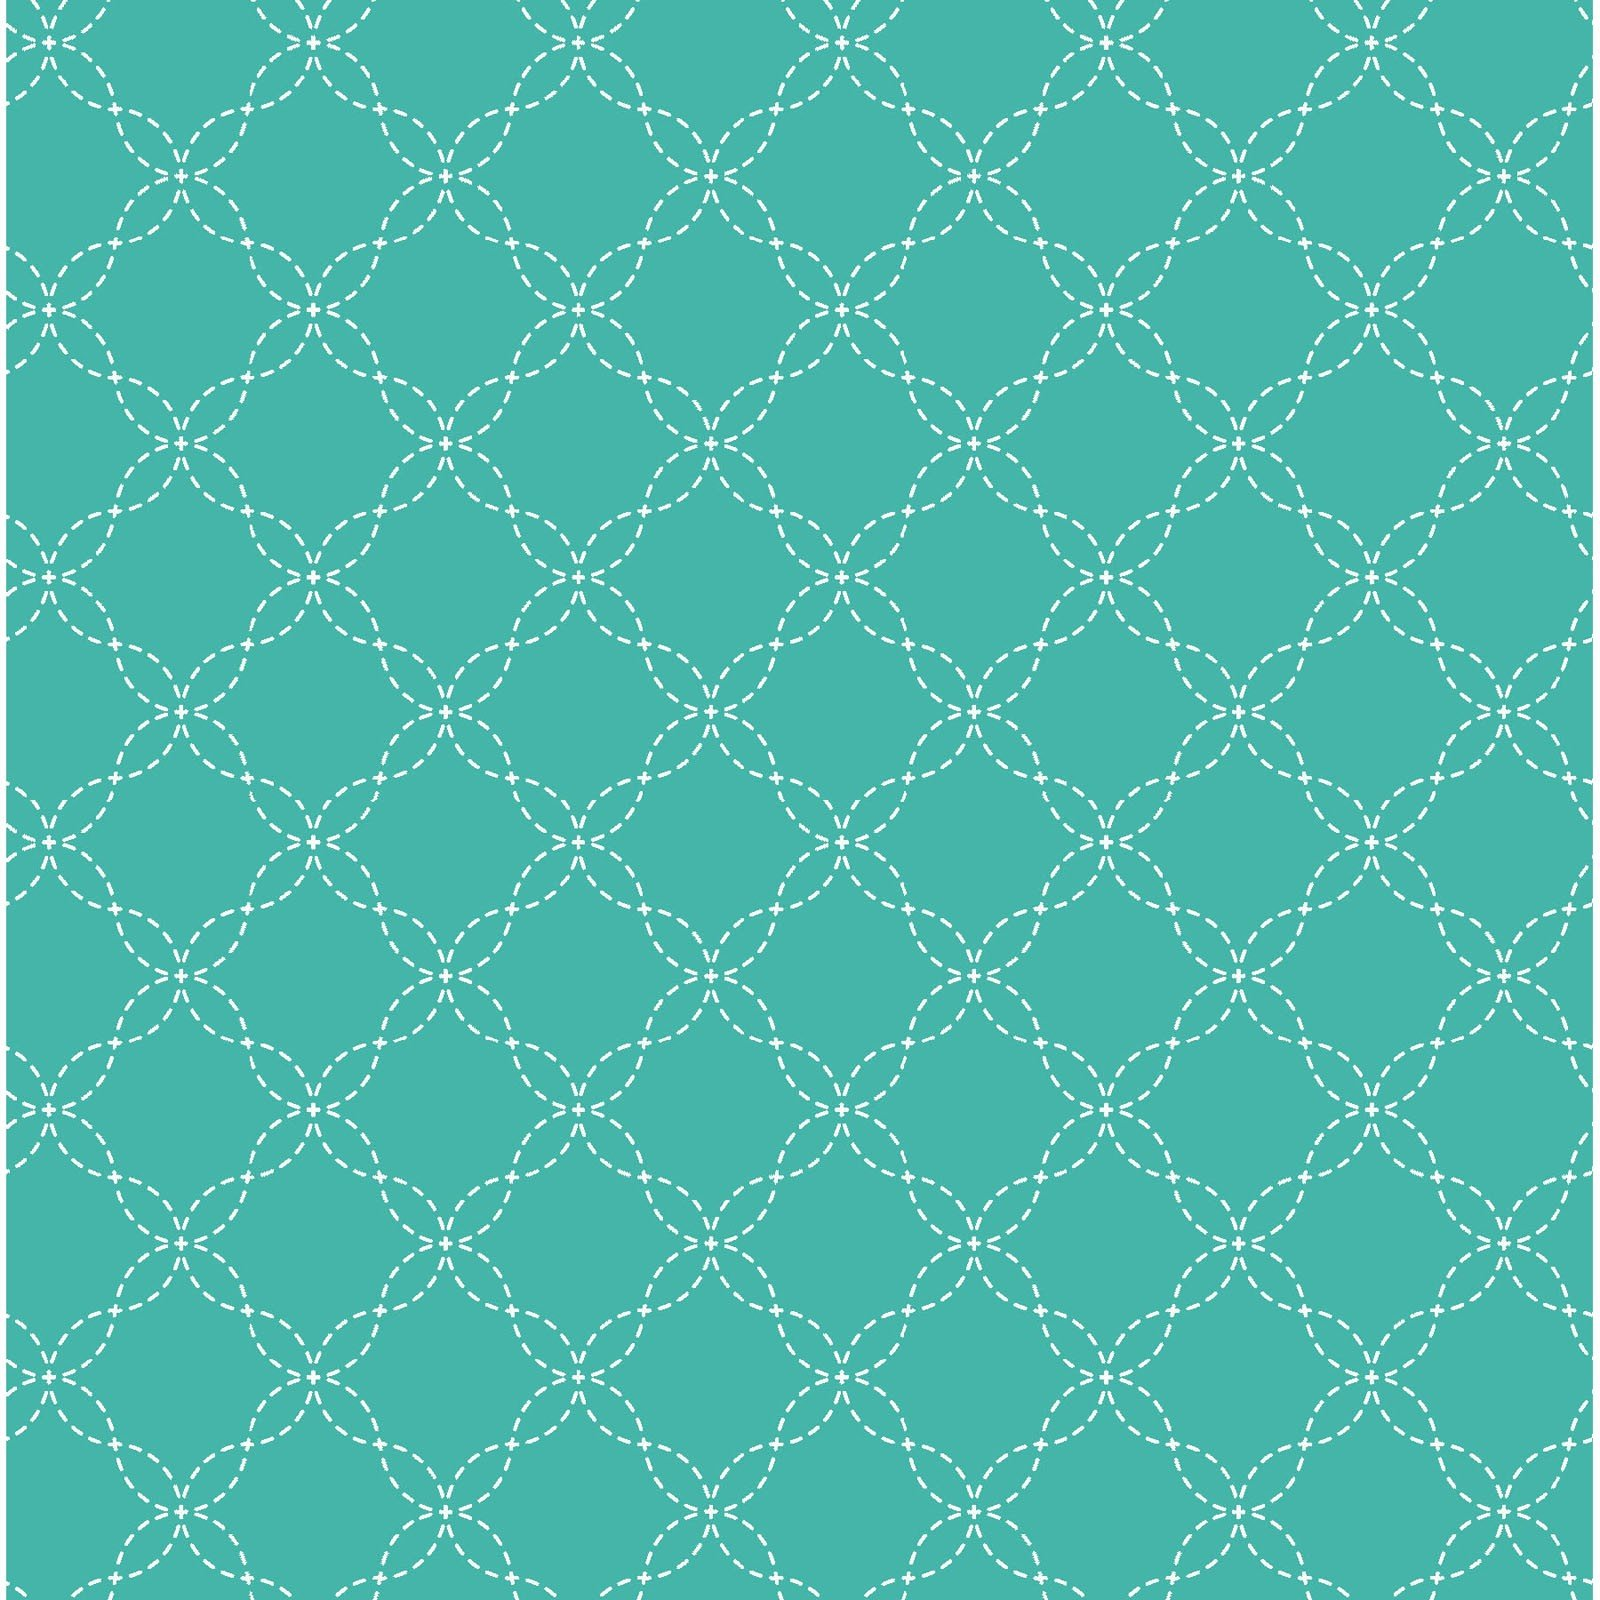 Lattice - Teal<br/>Maywood Studio 8209-Q